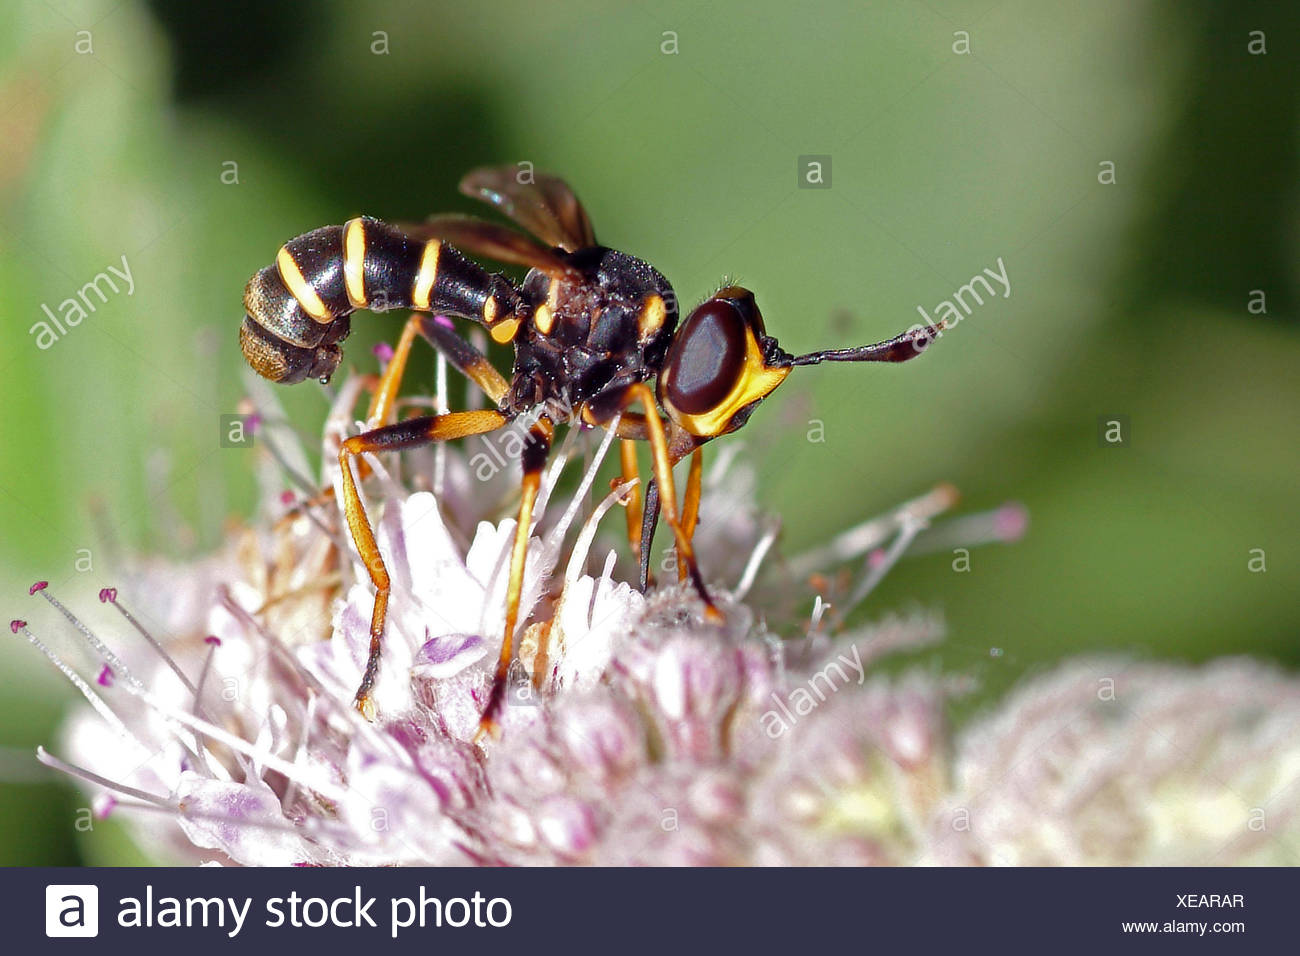 Conopid fly (Conops quadrifasciatus), on lilac flower, Germany - Stock Image